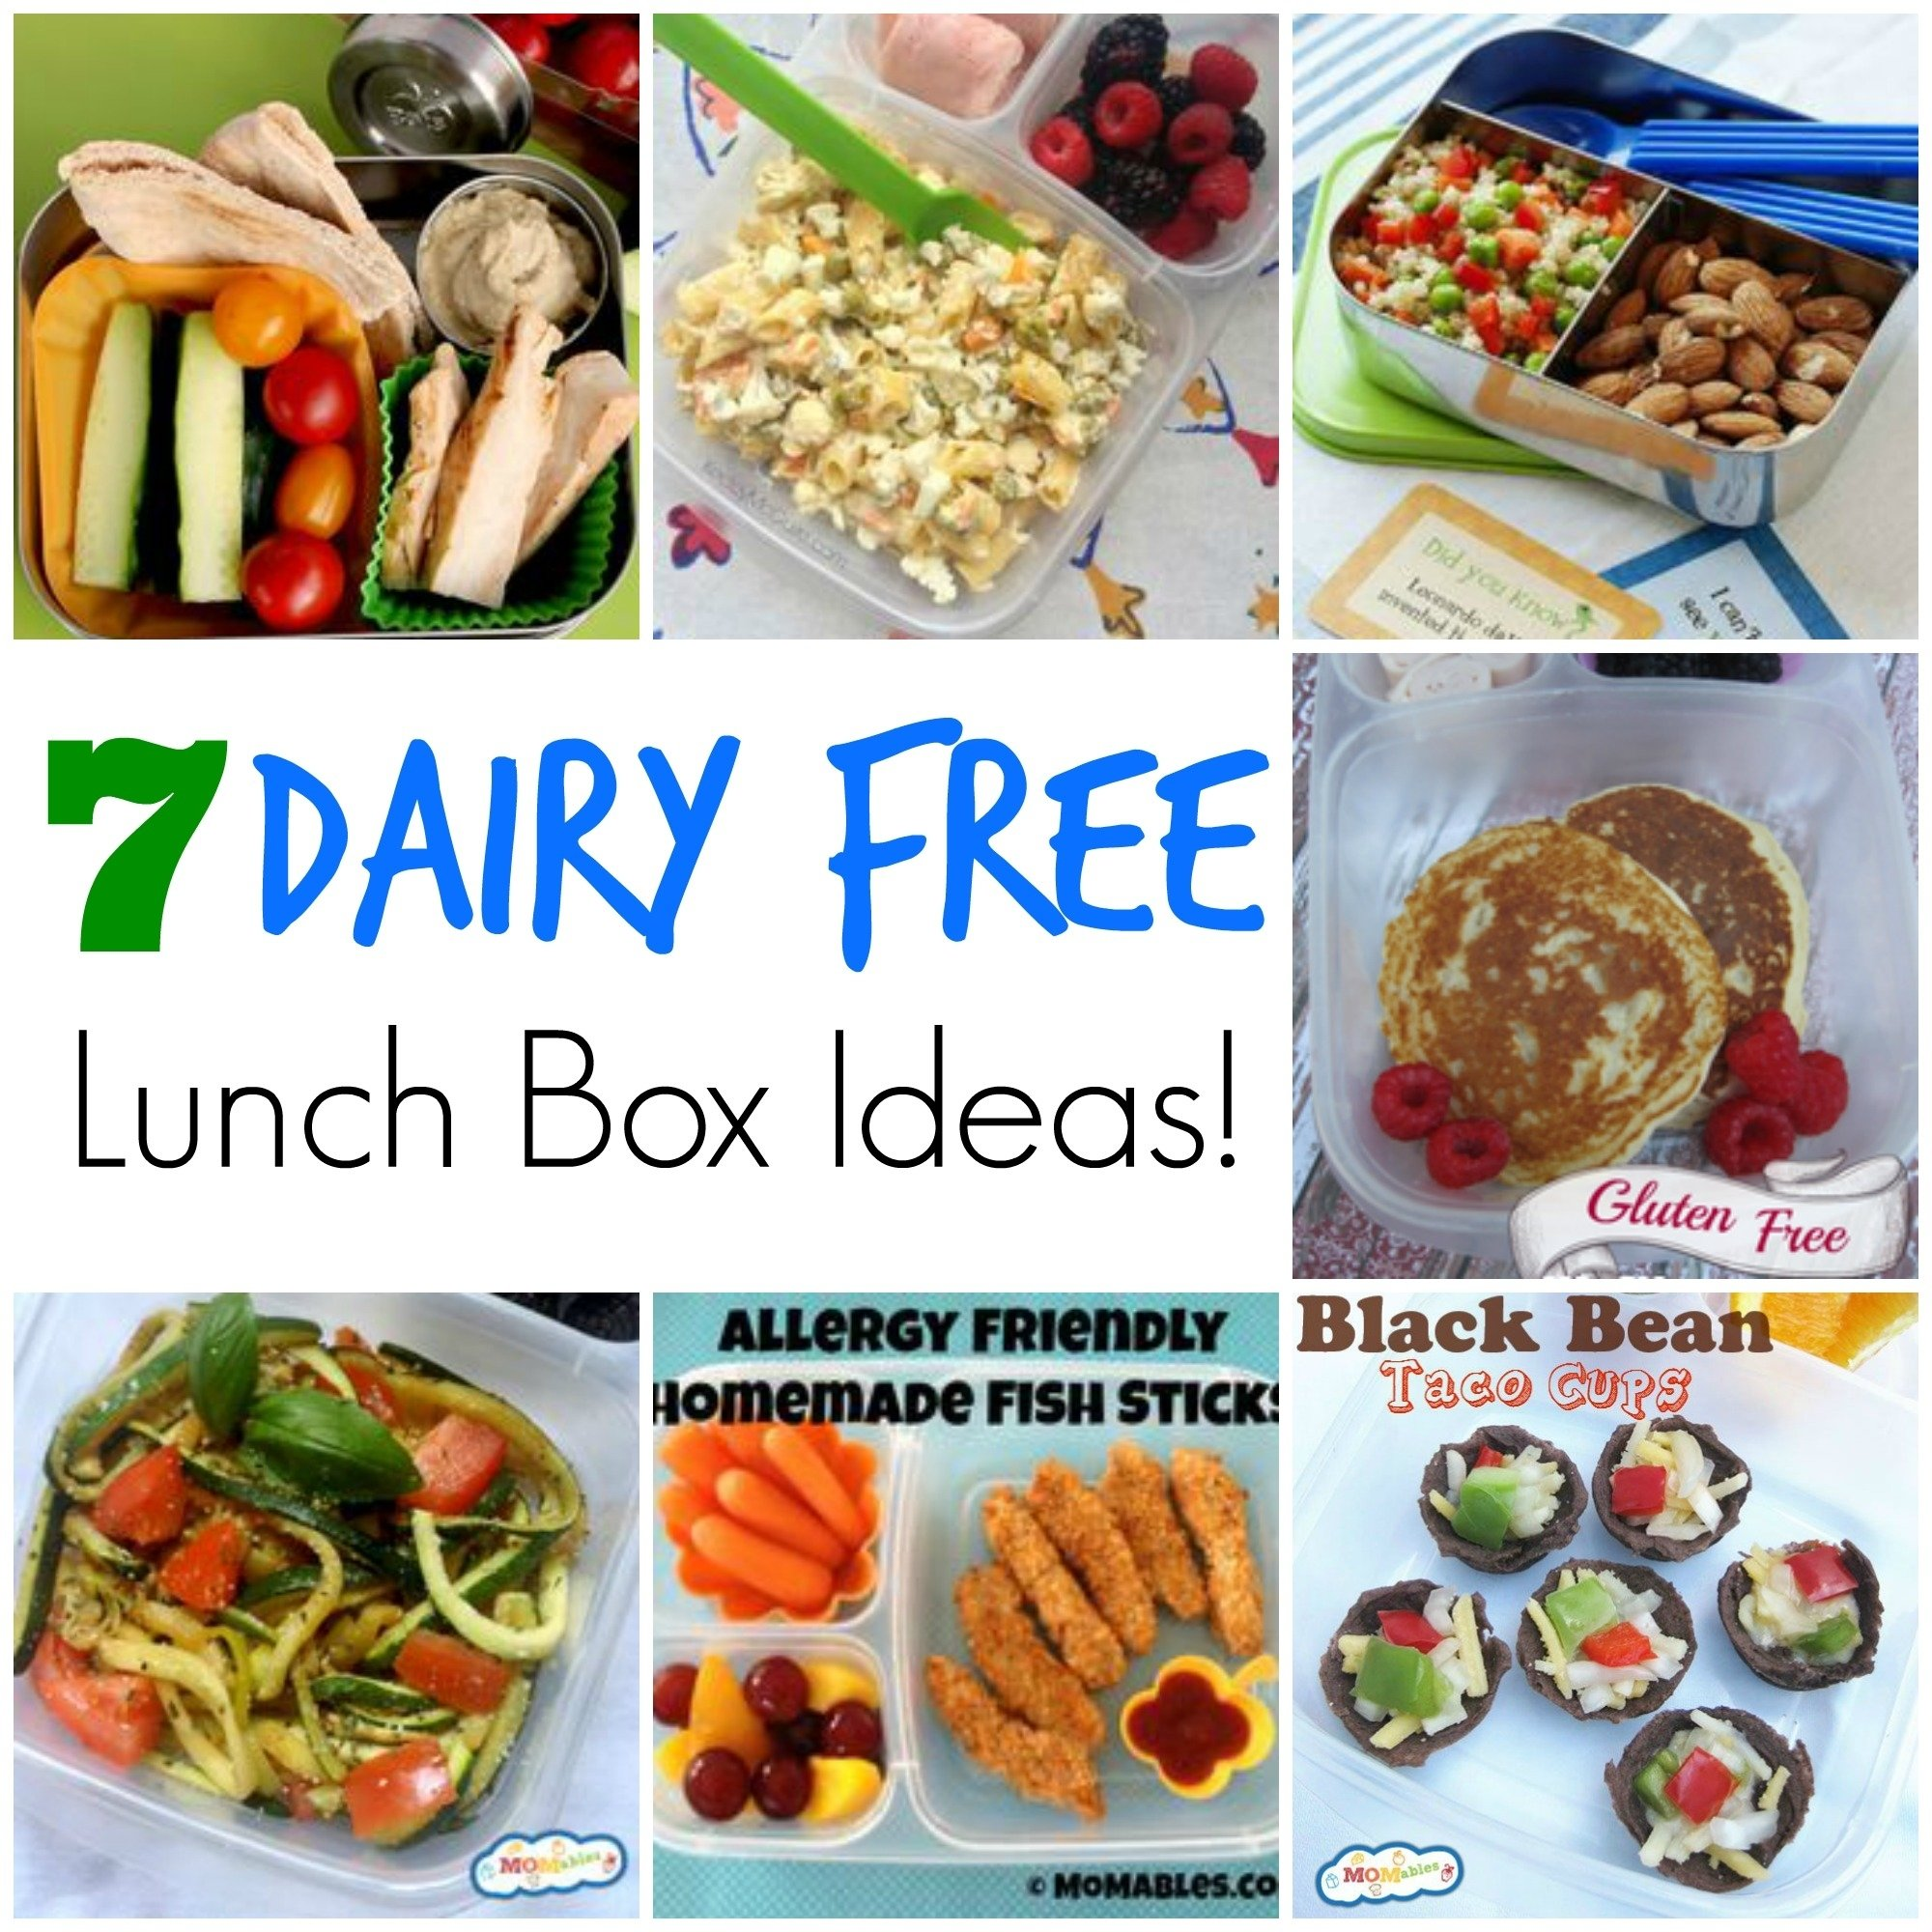 10 Cute Lunch Box Ideas For Picky Eaters 7 dairy free school lunch ideas 8 2020